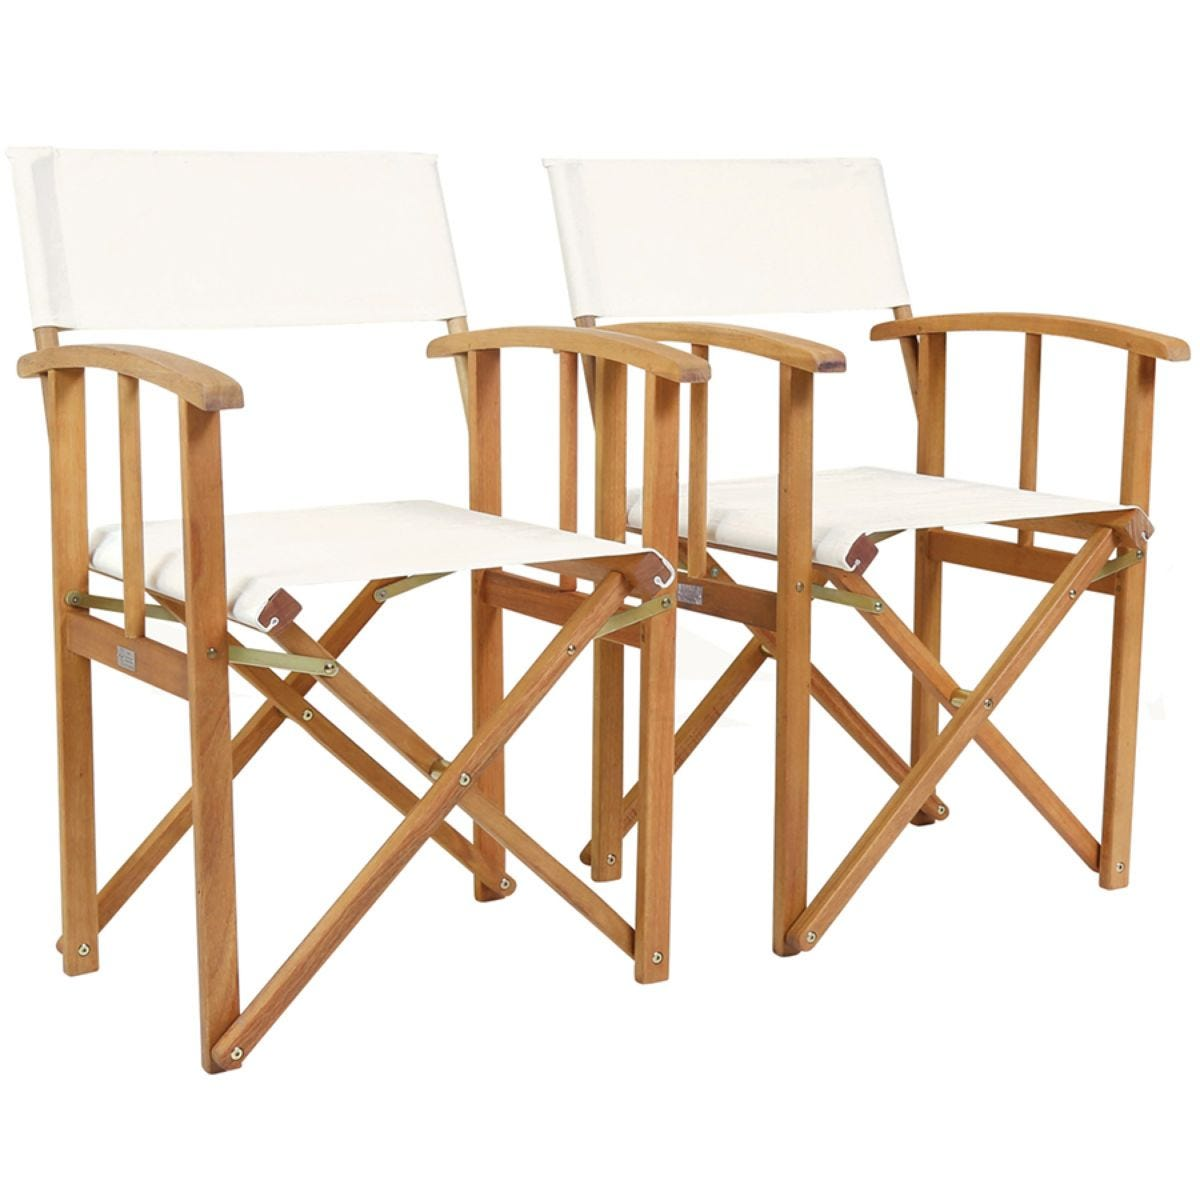 Charles Bentley Fsc Pair Of Wooden Foldable Directors Chairs With Cream Fabric